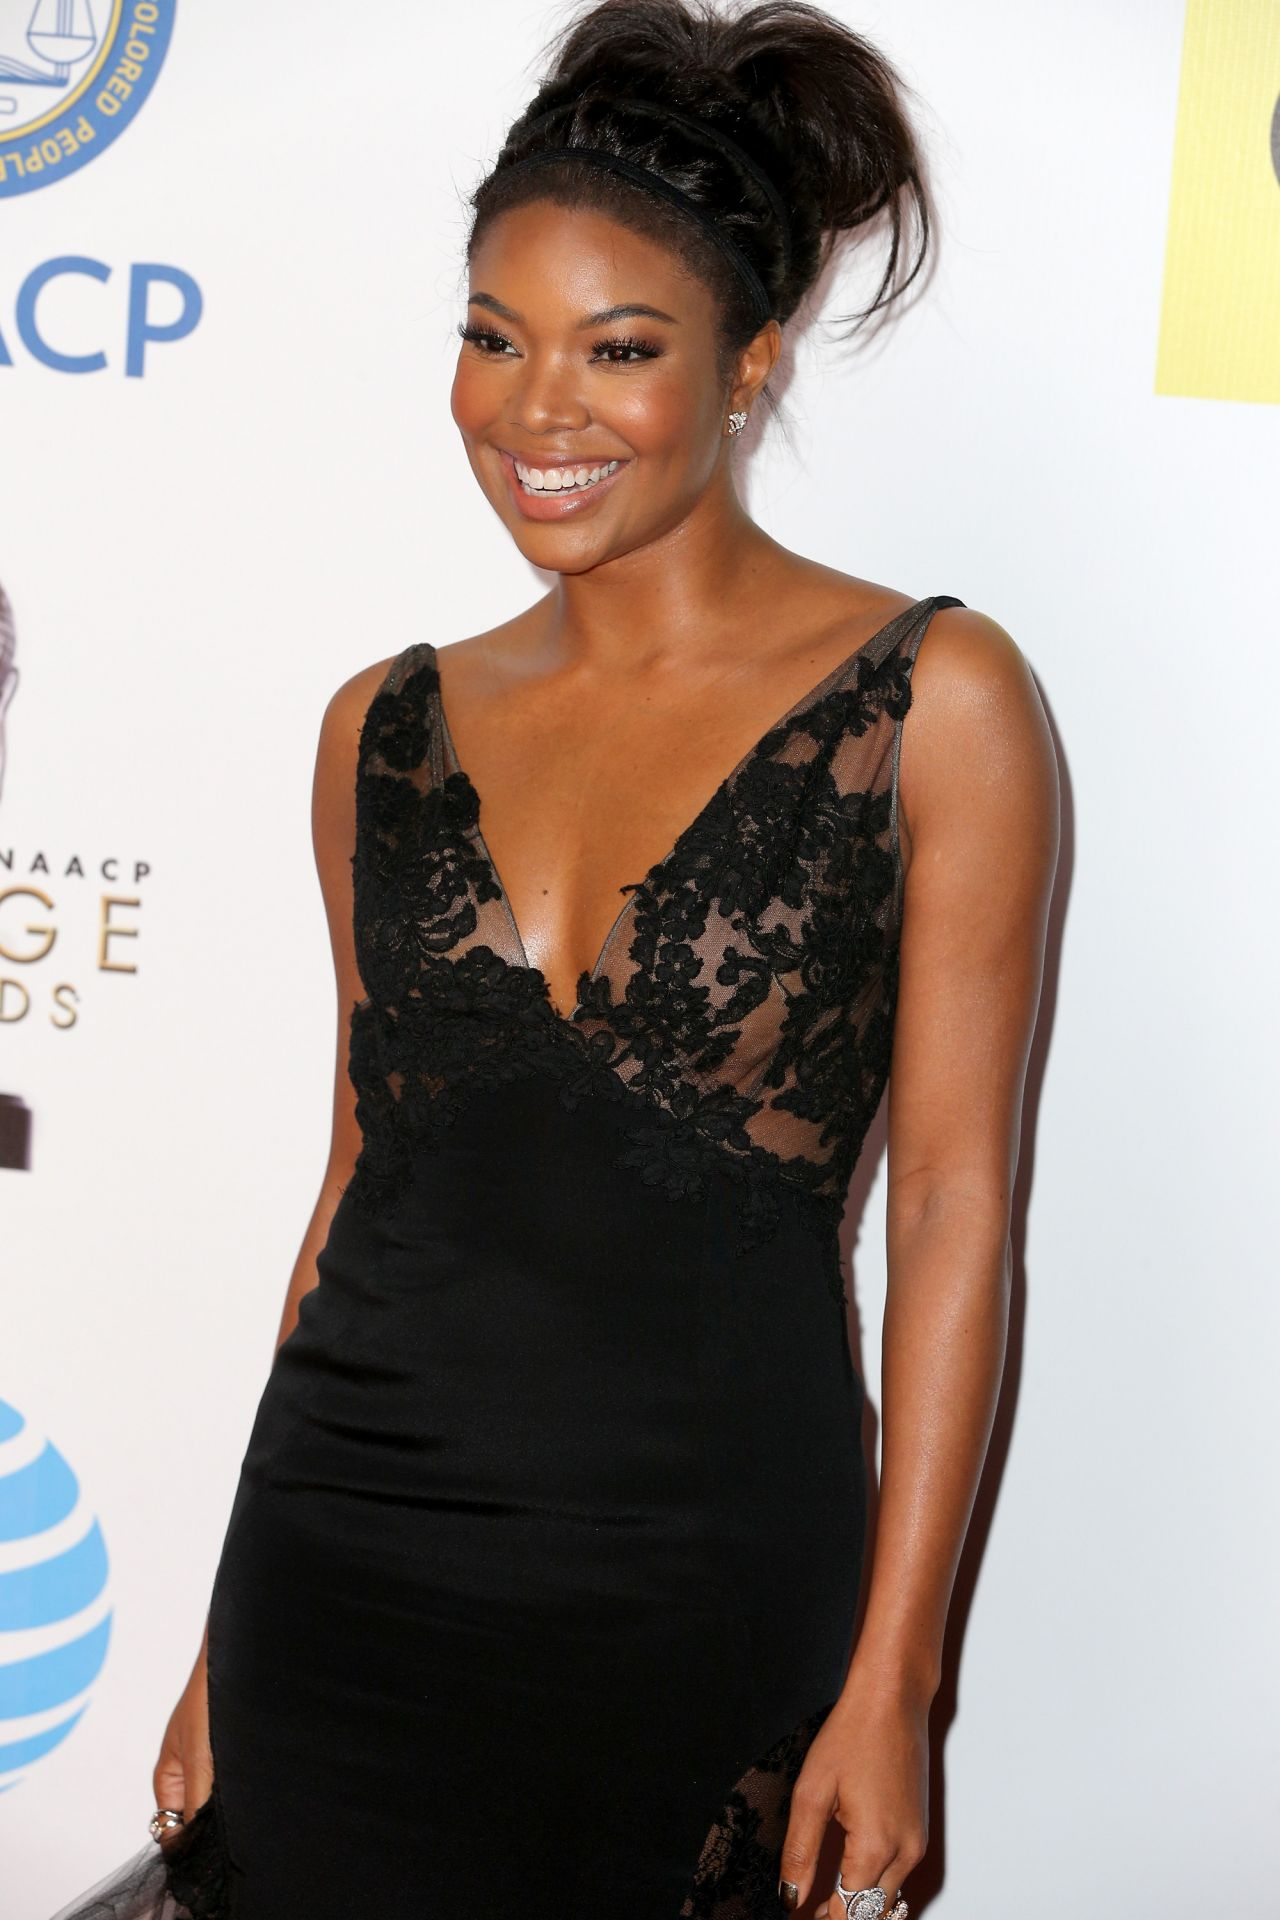 gabrielle-union-naacp-image-awards-2016-presented-by-tv-one-in-pasadena-ca-4